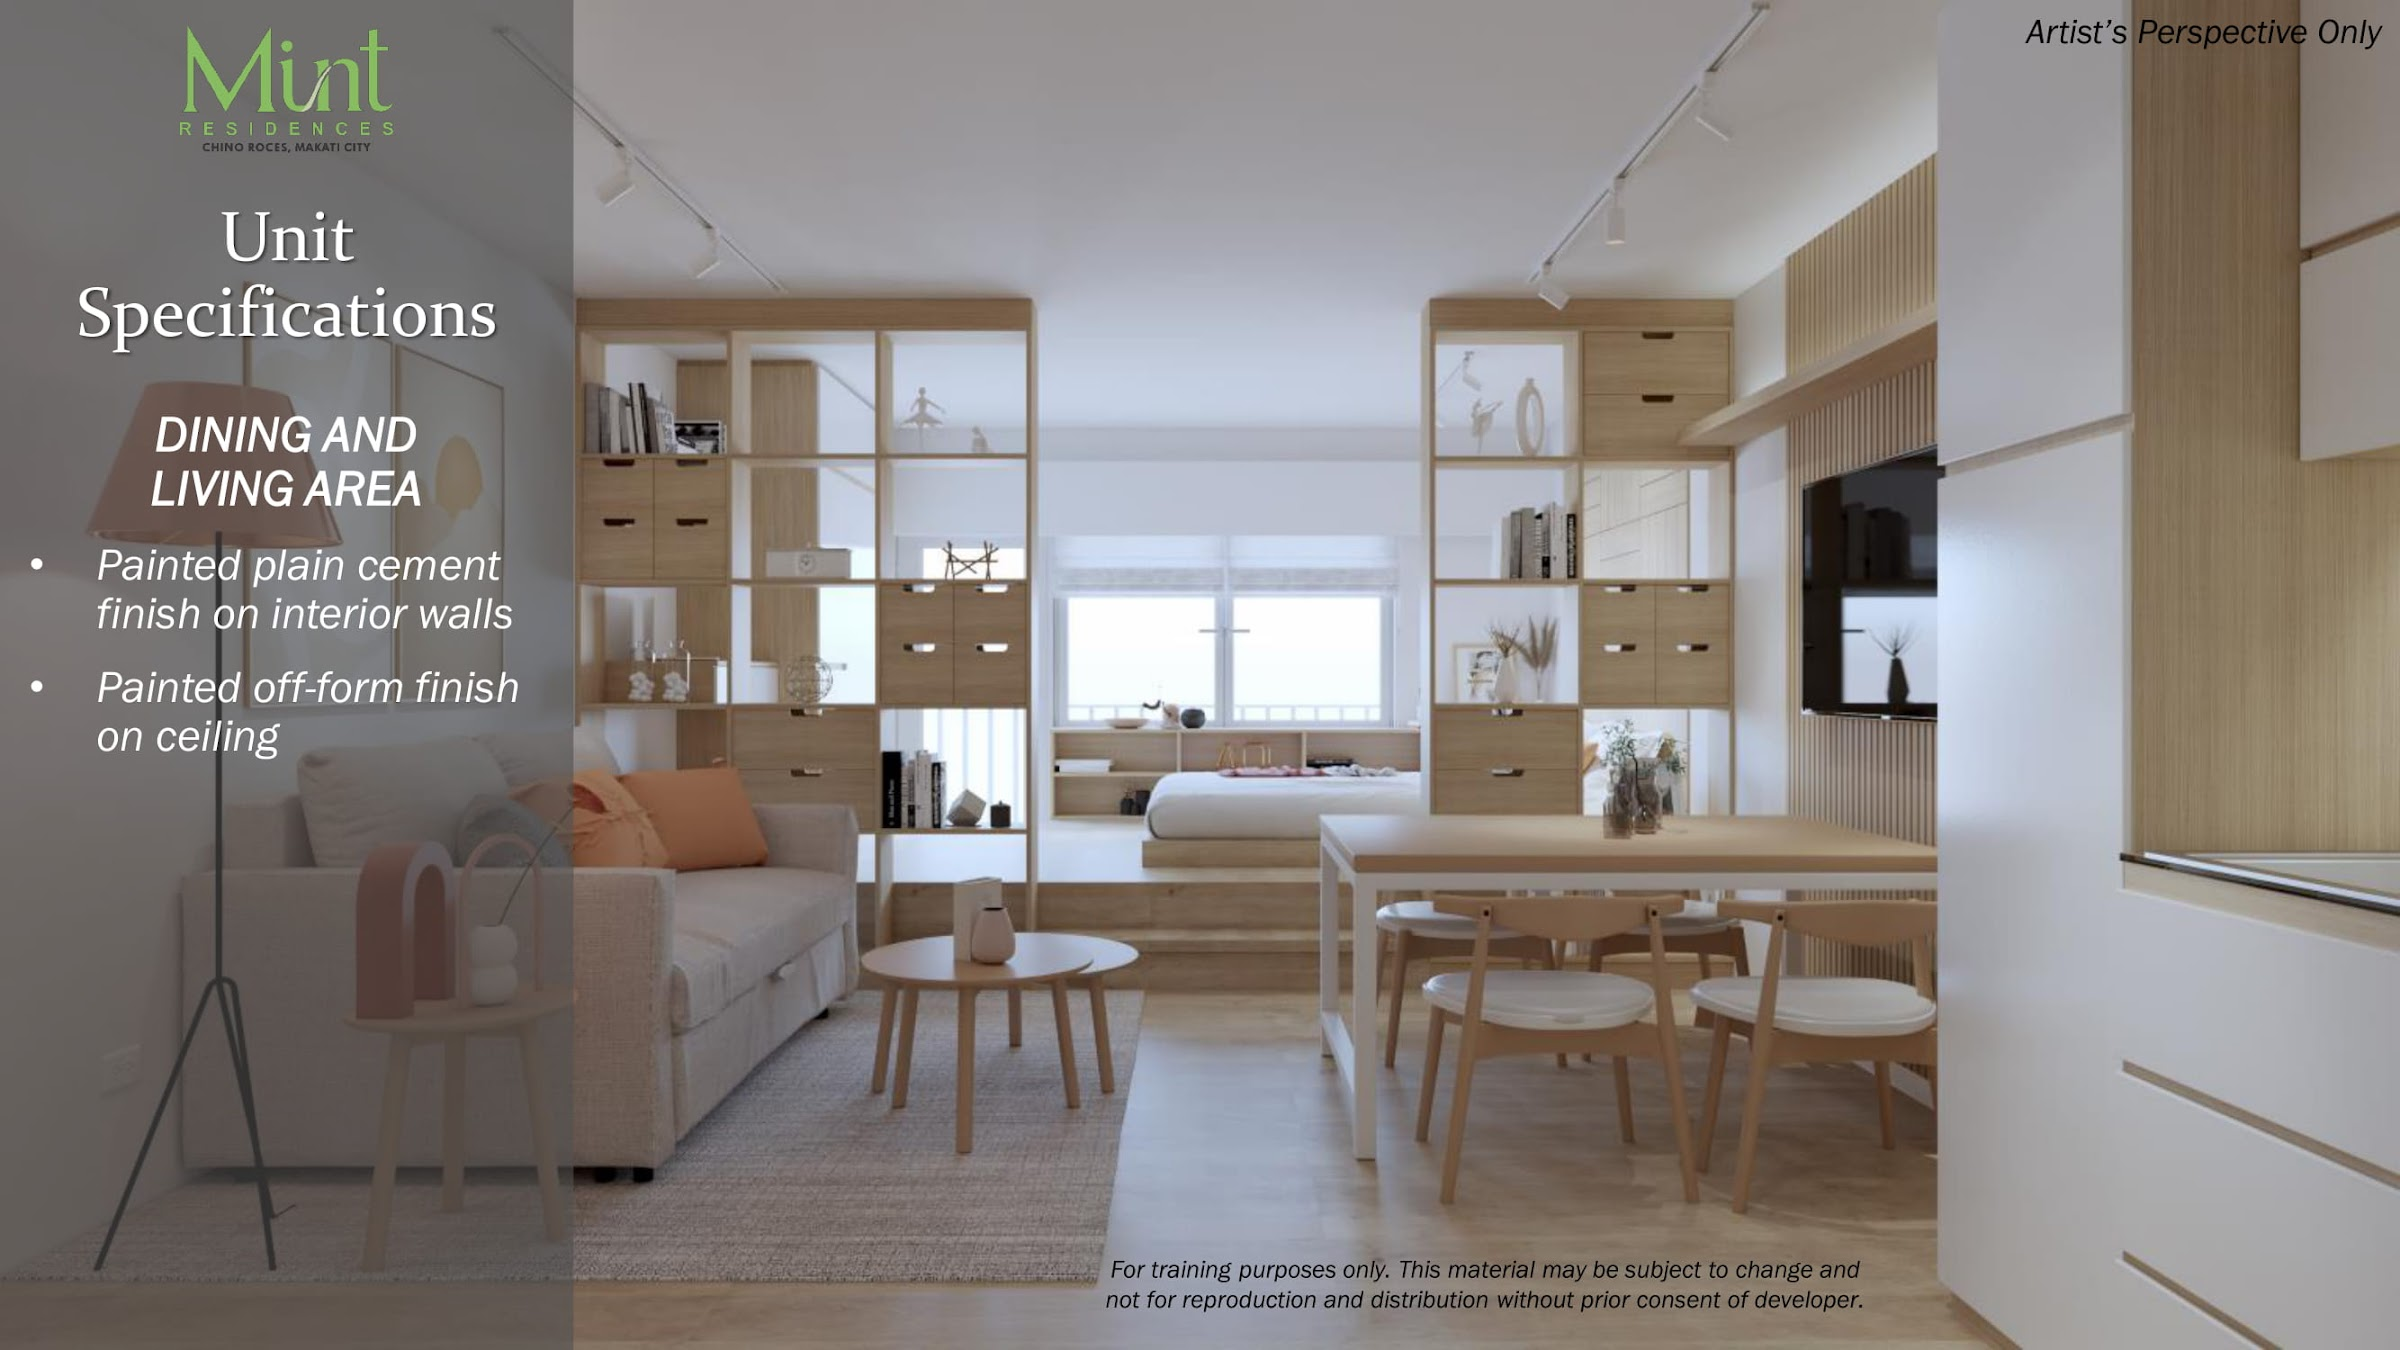 Mint Residences, Chino Roces Makati unit finishes